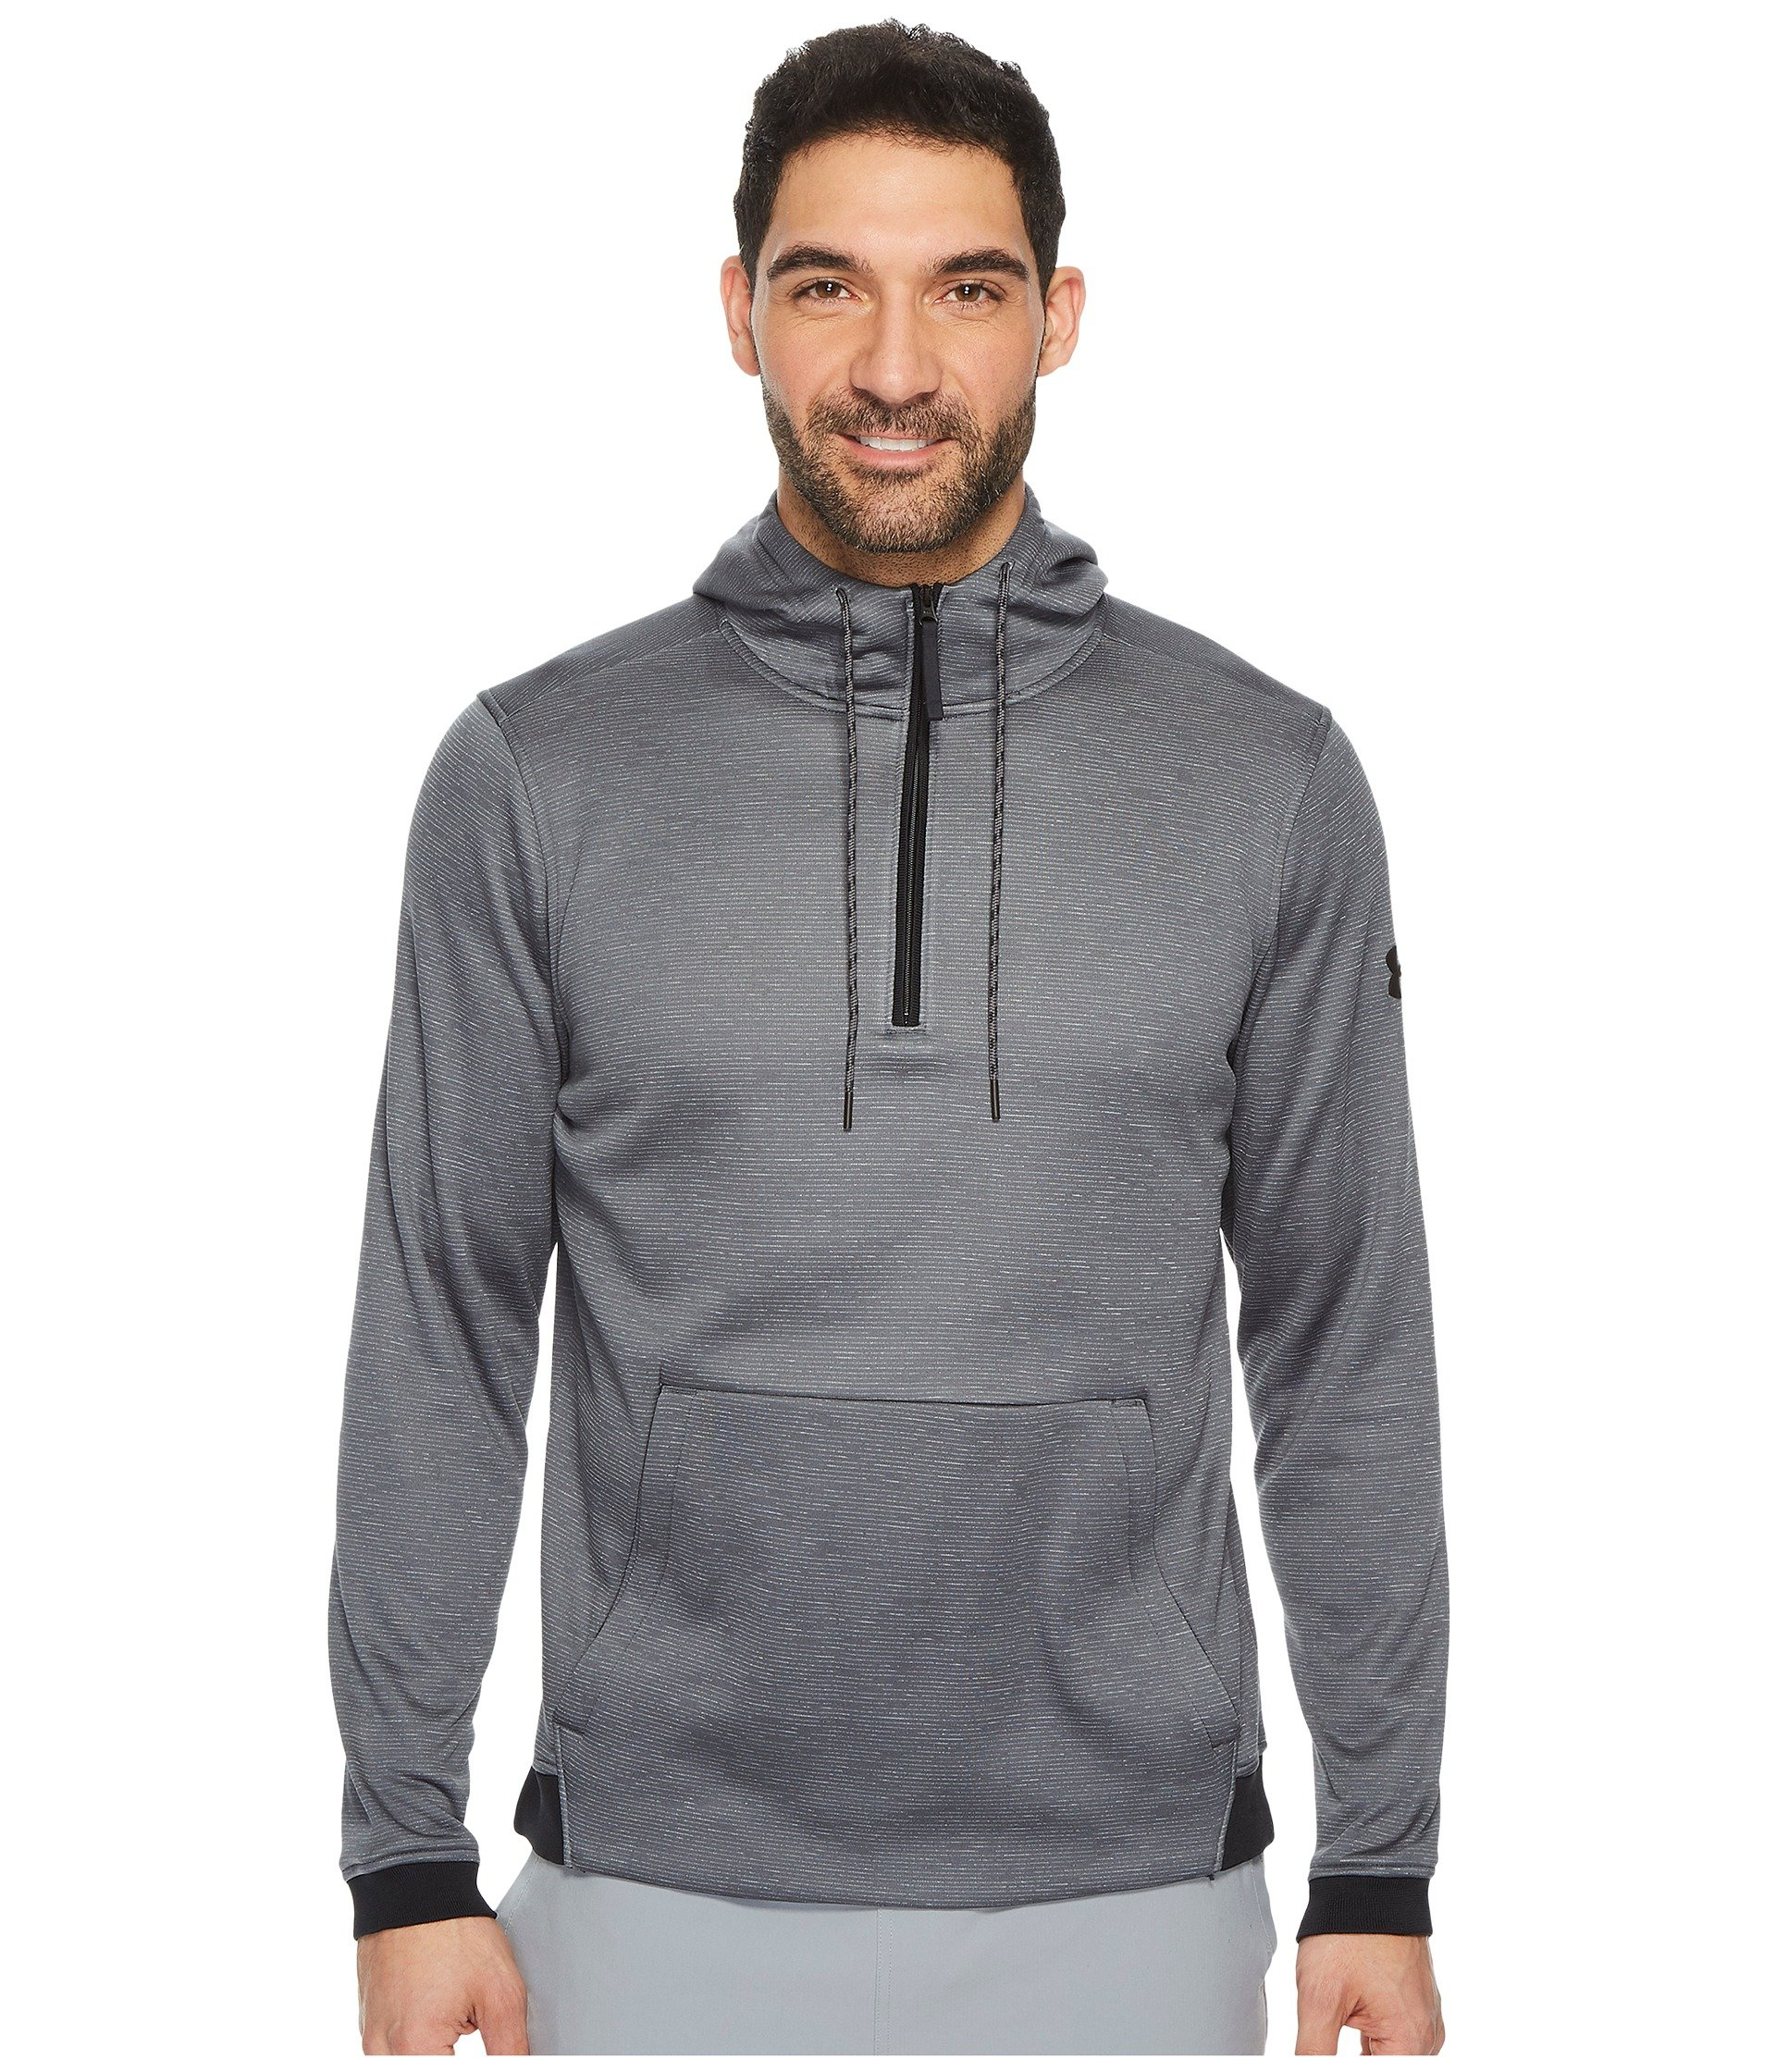 Men's Under Armour Armour Fleece Icon 1/4 Zip PO Hoodie, Rhino Grey, X-Small